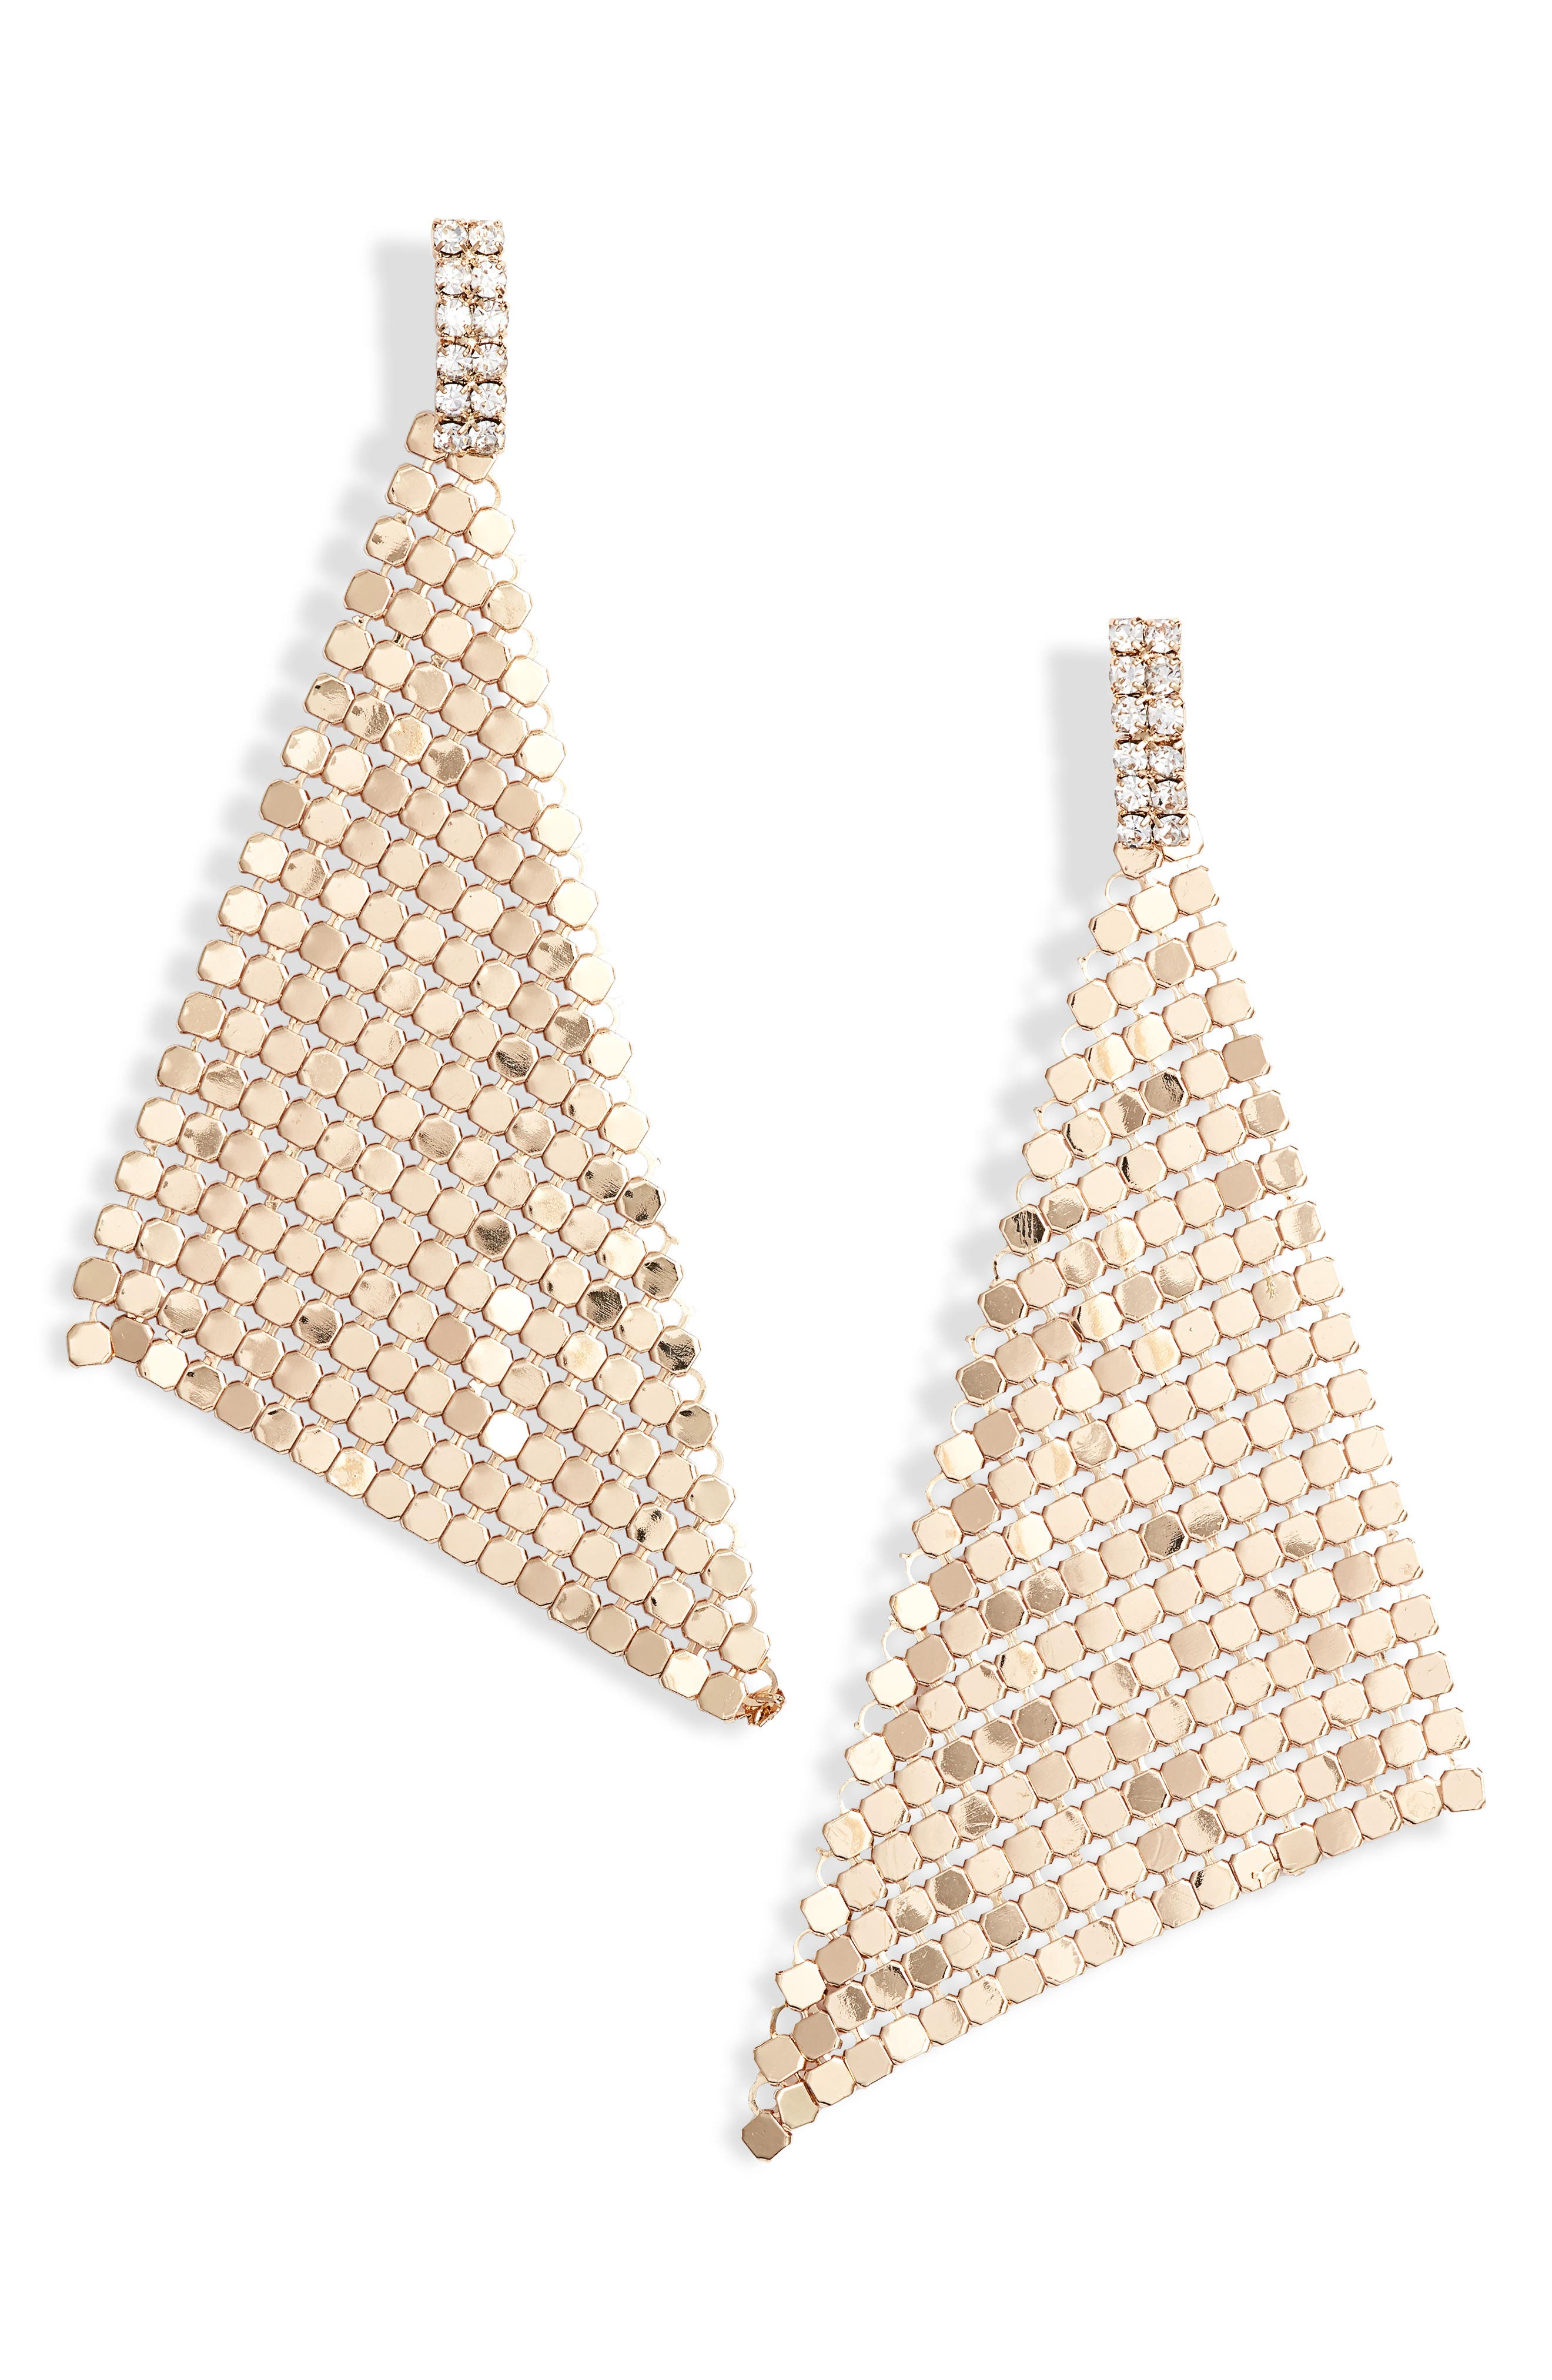 Crystal & Chain Mail Triangle Earrings,                             Main thumbnail 1, color,                             710